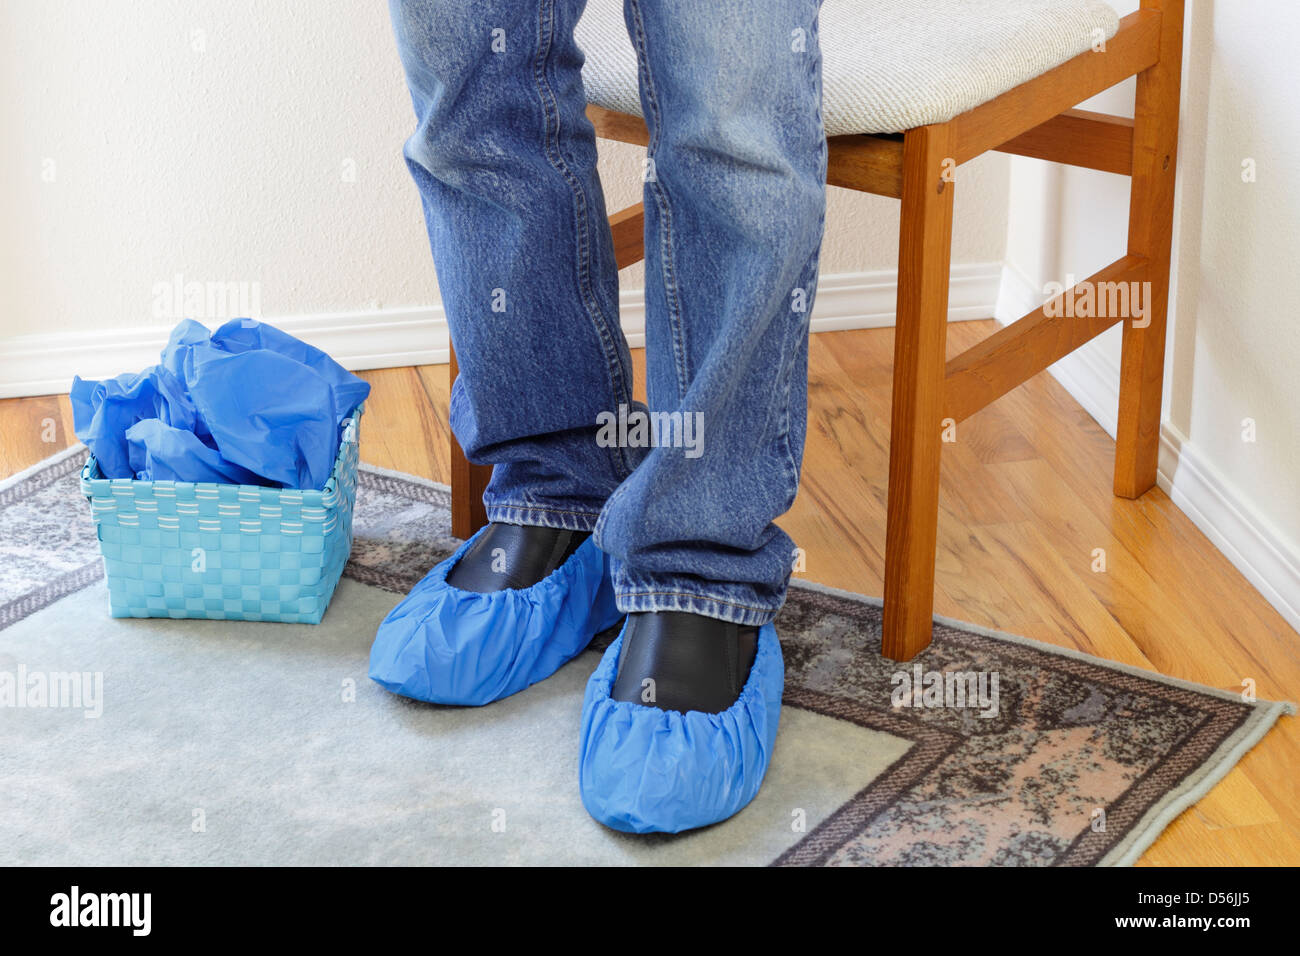 Male legs wearing jeans seen from the knees down to the floor wearing blue floor protectors called booties on both - Stock Image